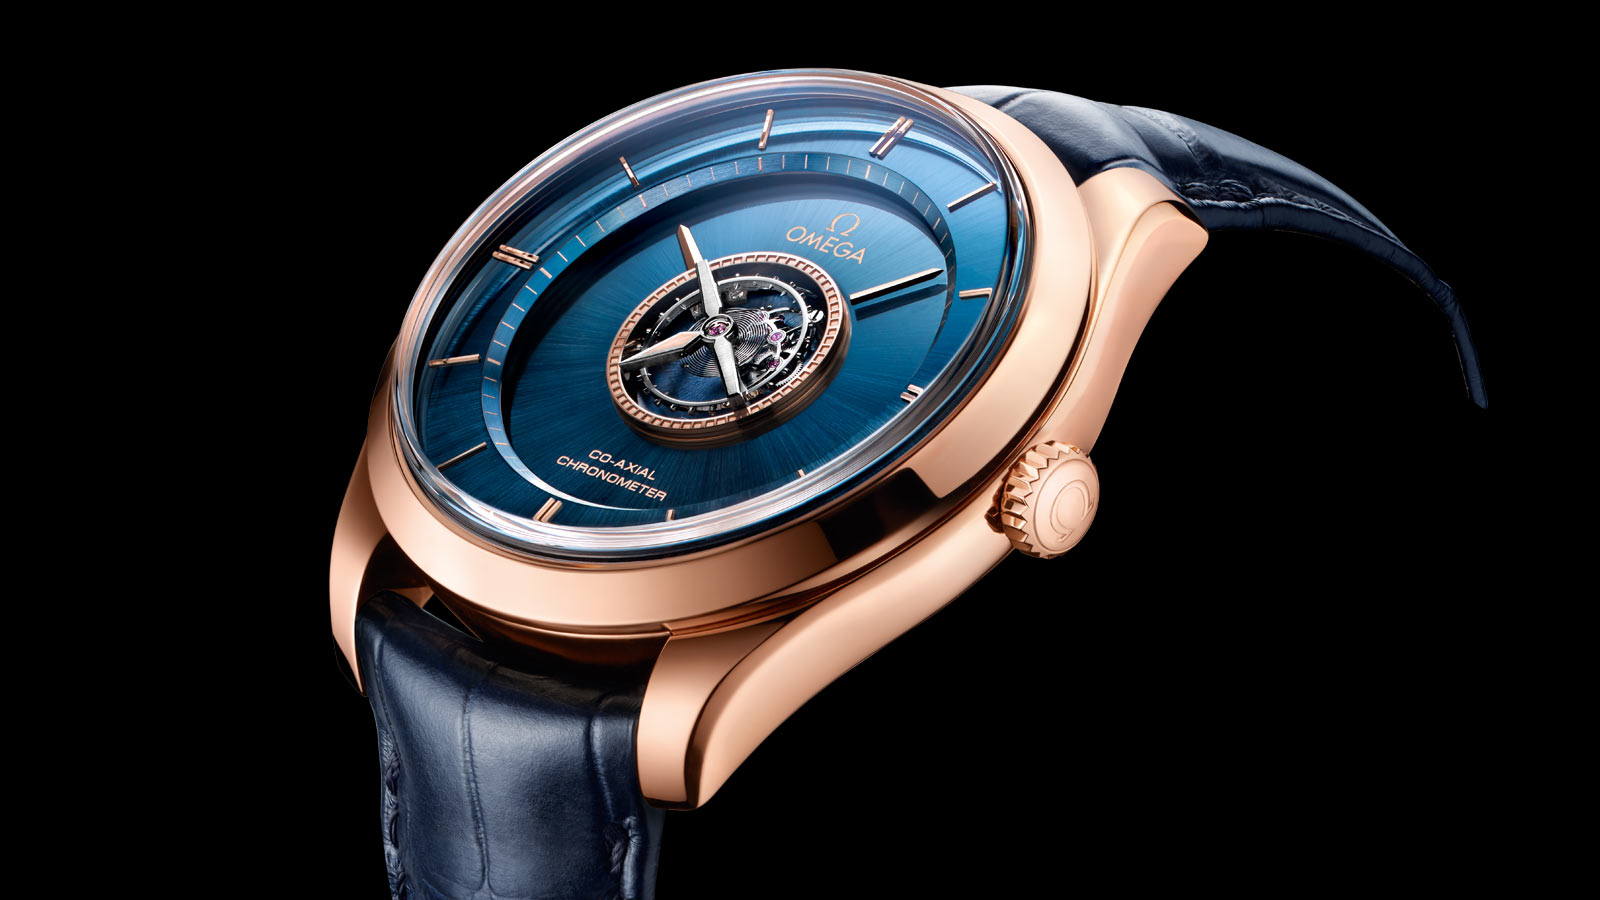 De Ville Tourbillon Tourbillon Co‑Axial Numbered Edition 44 mm - 528.53.44.21.03.001 - View 3